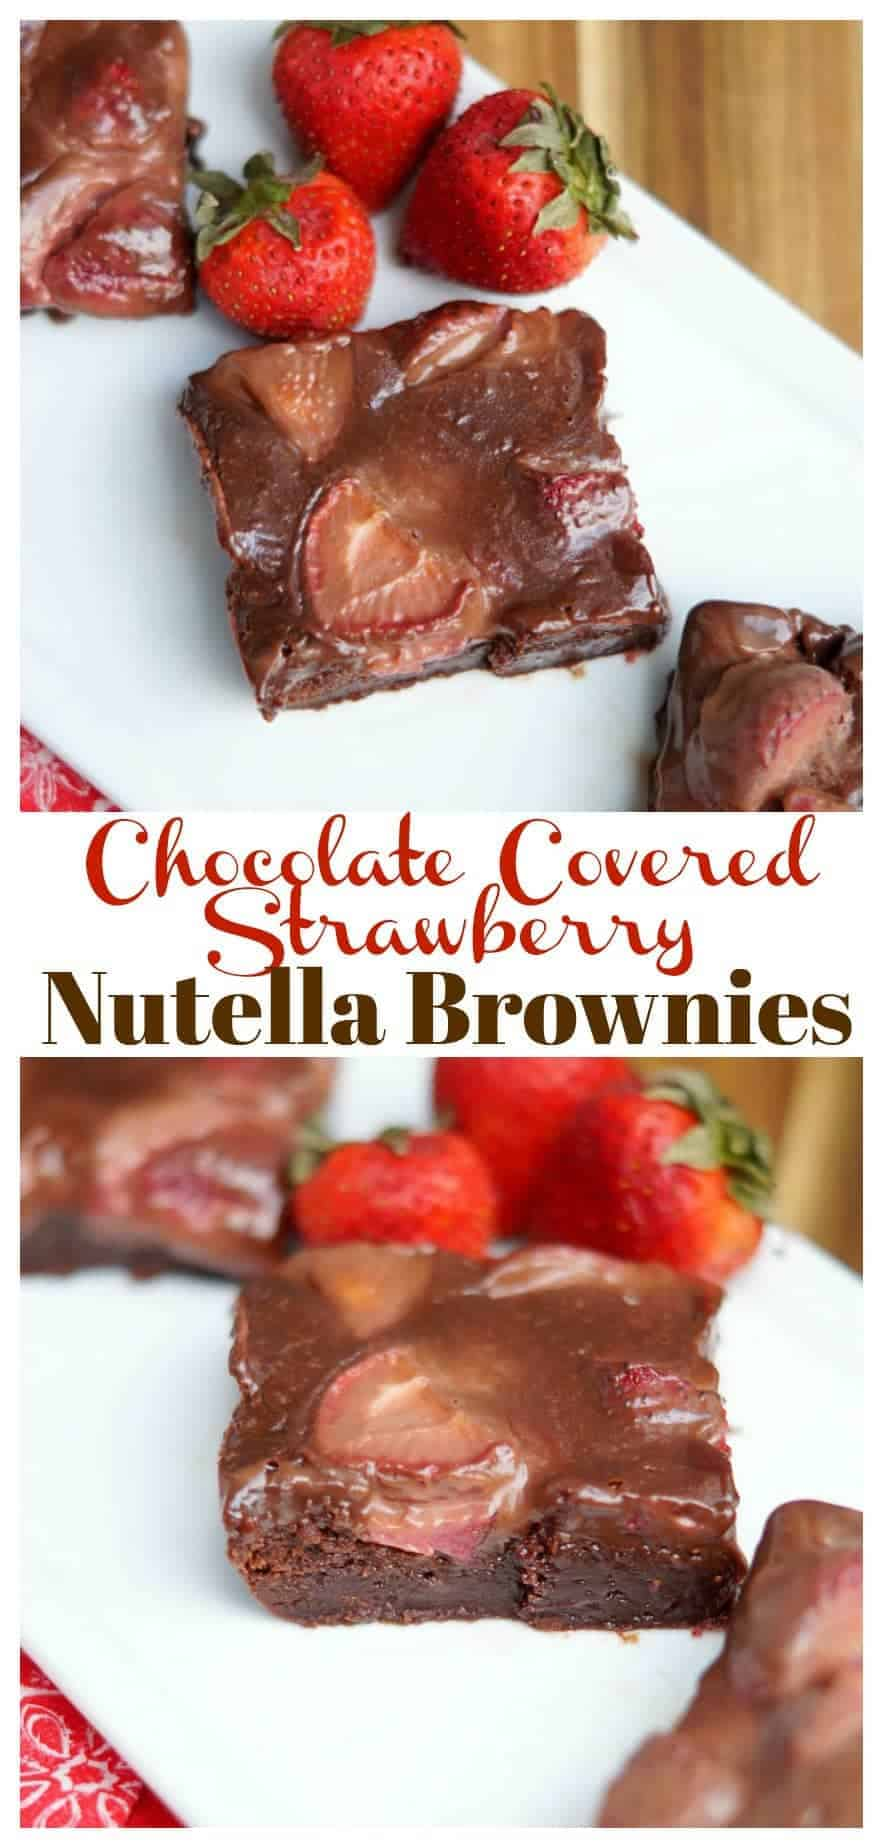 These Chocolate Covered Strawberry Nutella Brownies are a nutella lovers dream! Three ingredient nutella brownies topped with strawberries and then a nutella ganache! YUM!